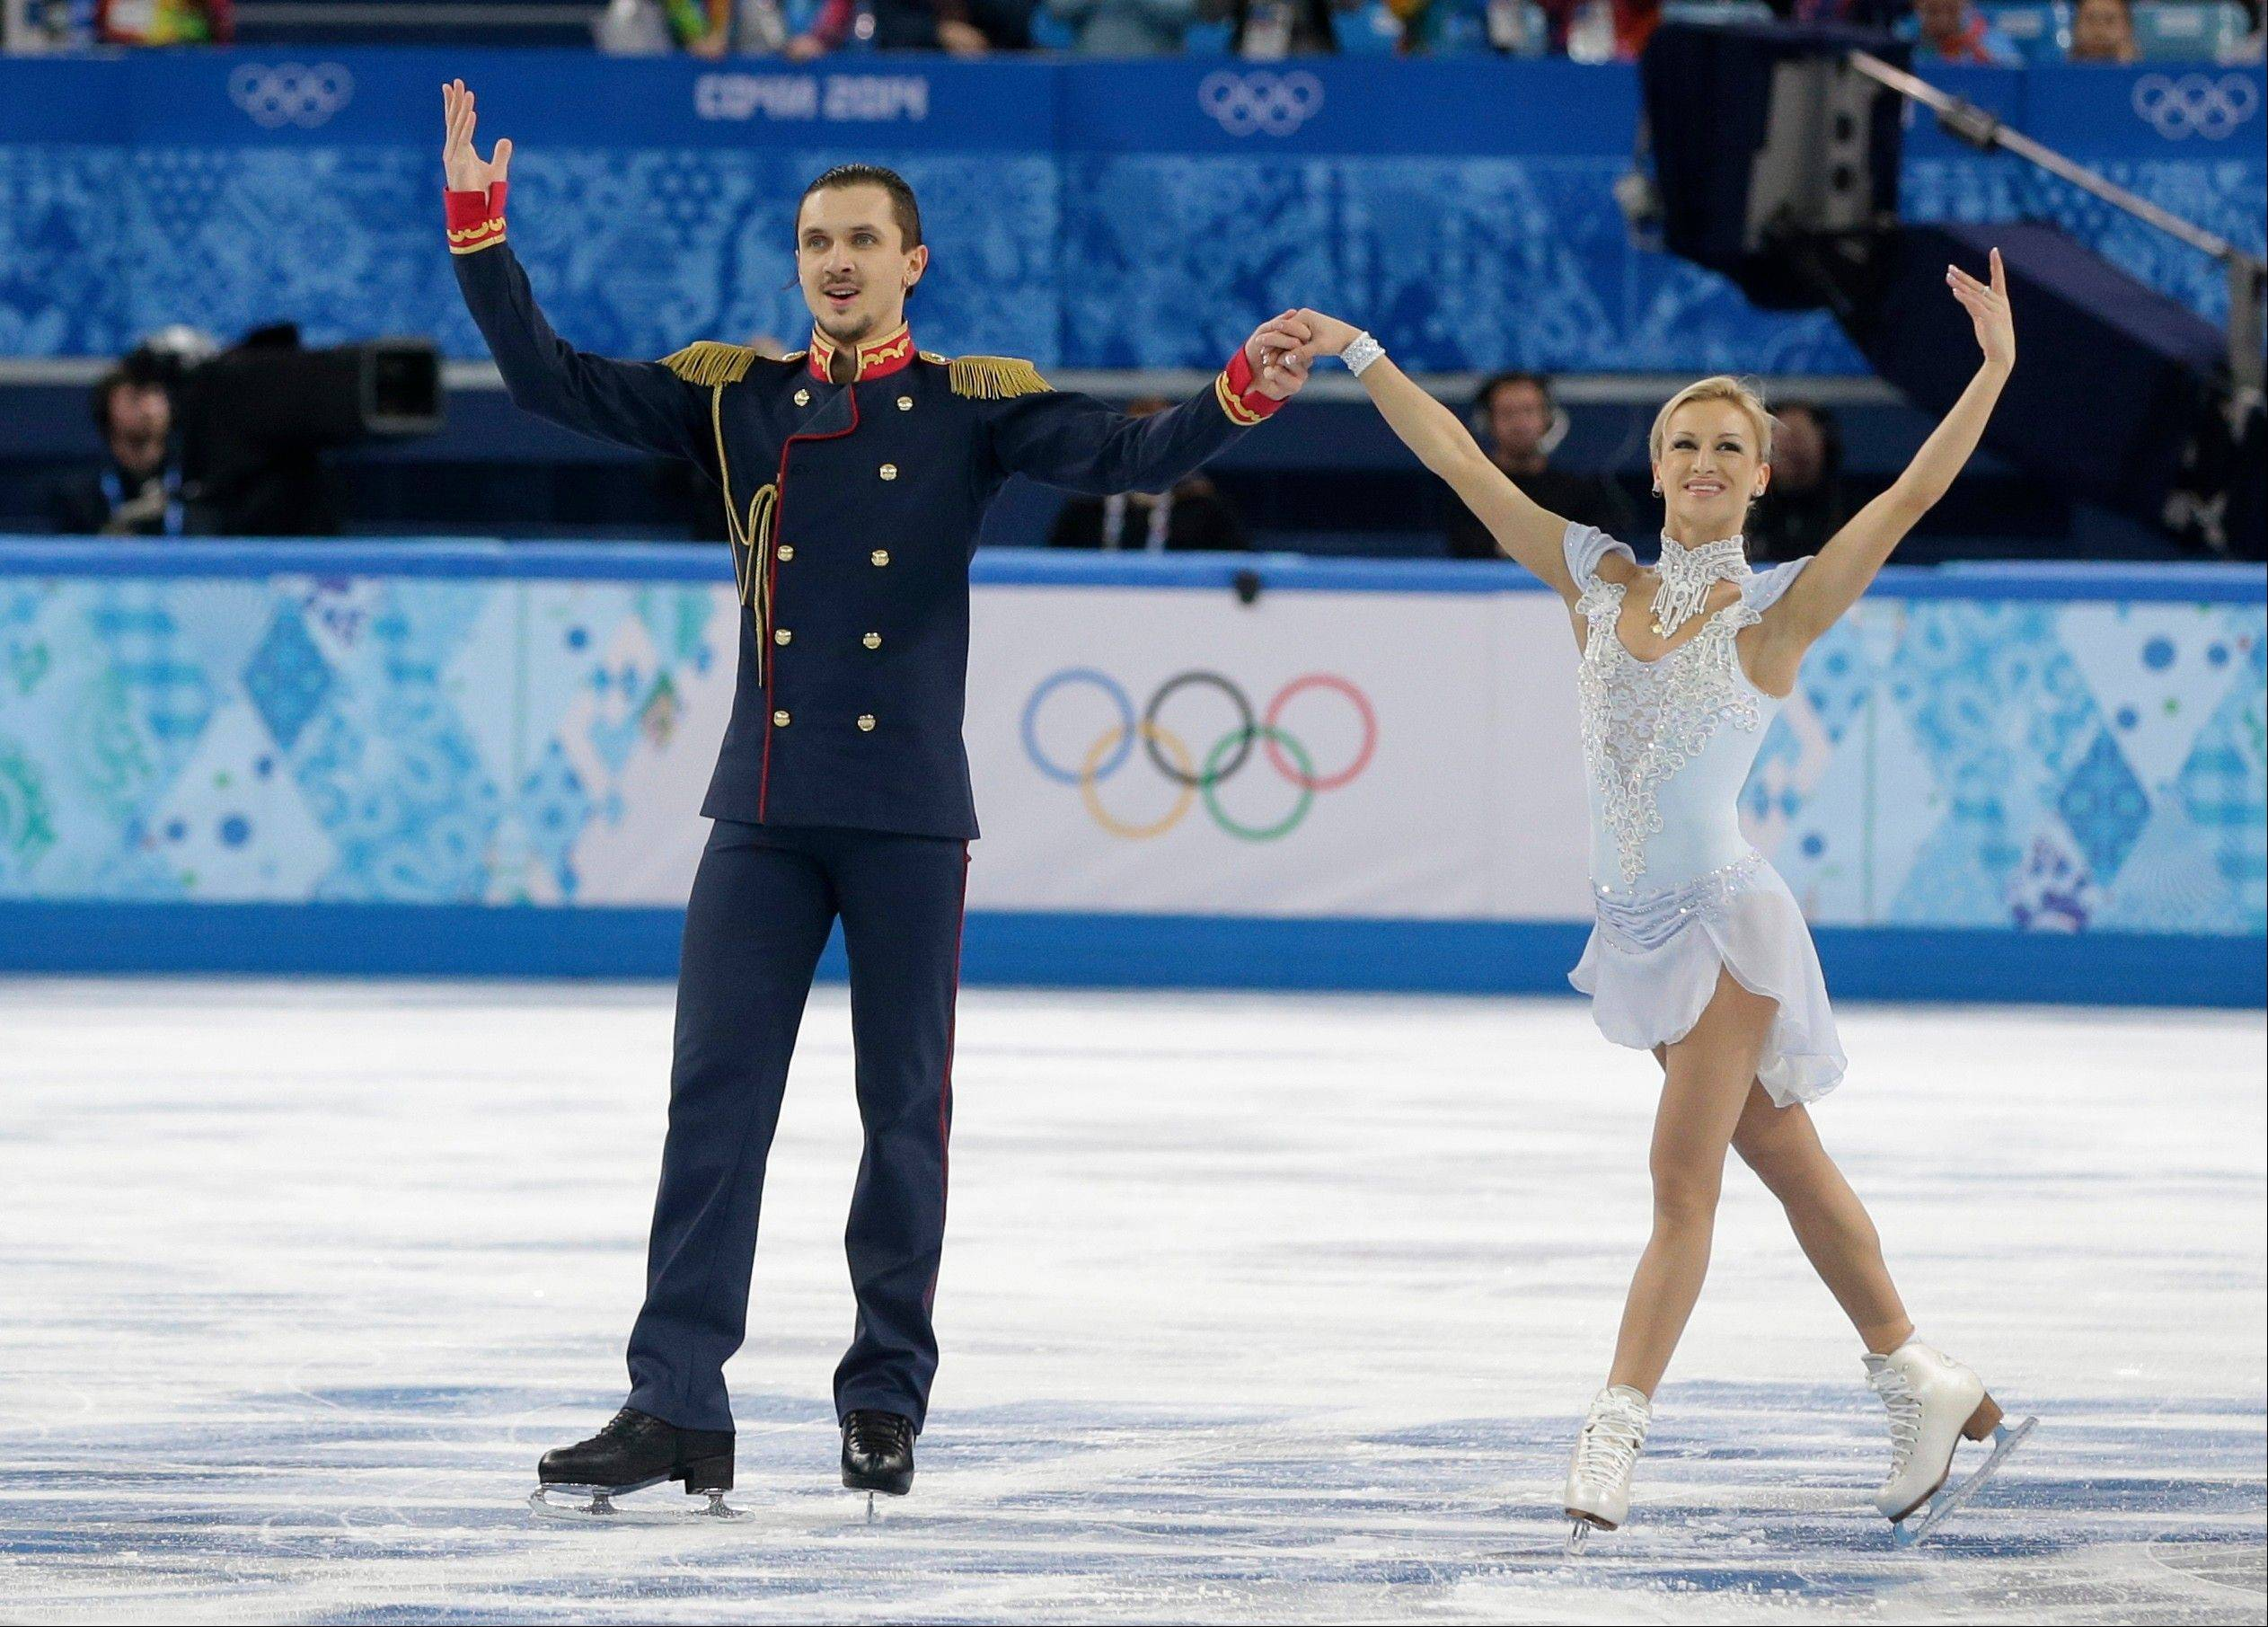 Tatiana Volosozhar and Maxim Trankov of Russia gesture to the crowd after finishing their routine in the team pairs short program figure skating competition at the Iceberg Skating Palace.